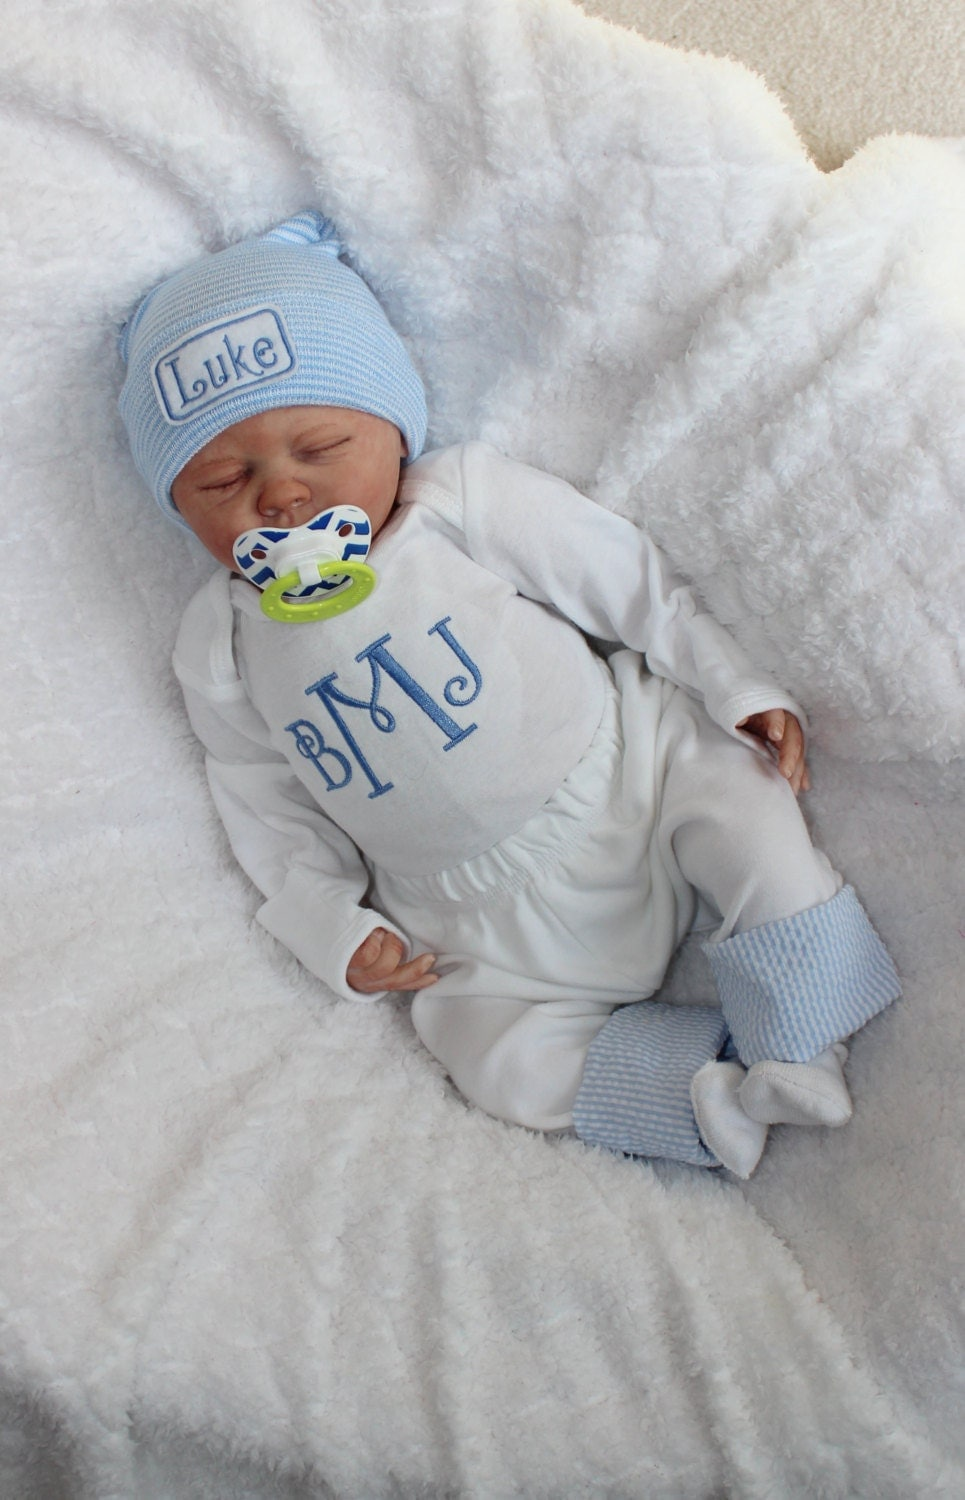 Selecting a coming home outfit is one of the most fun parts of expecting a baby! Your baby will wear this special outfit when you leave the hospital or birth center, and it .